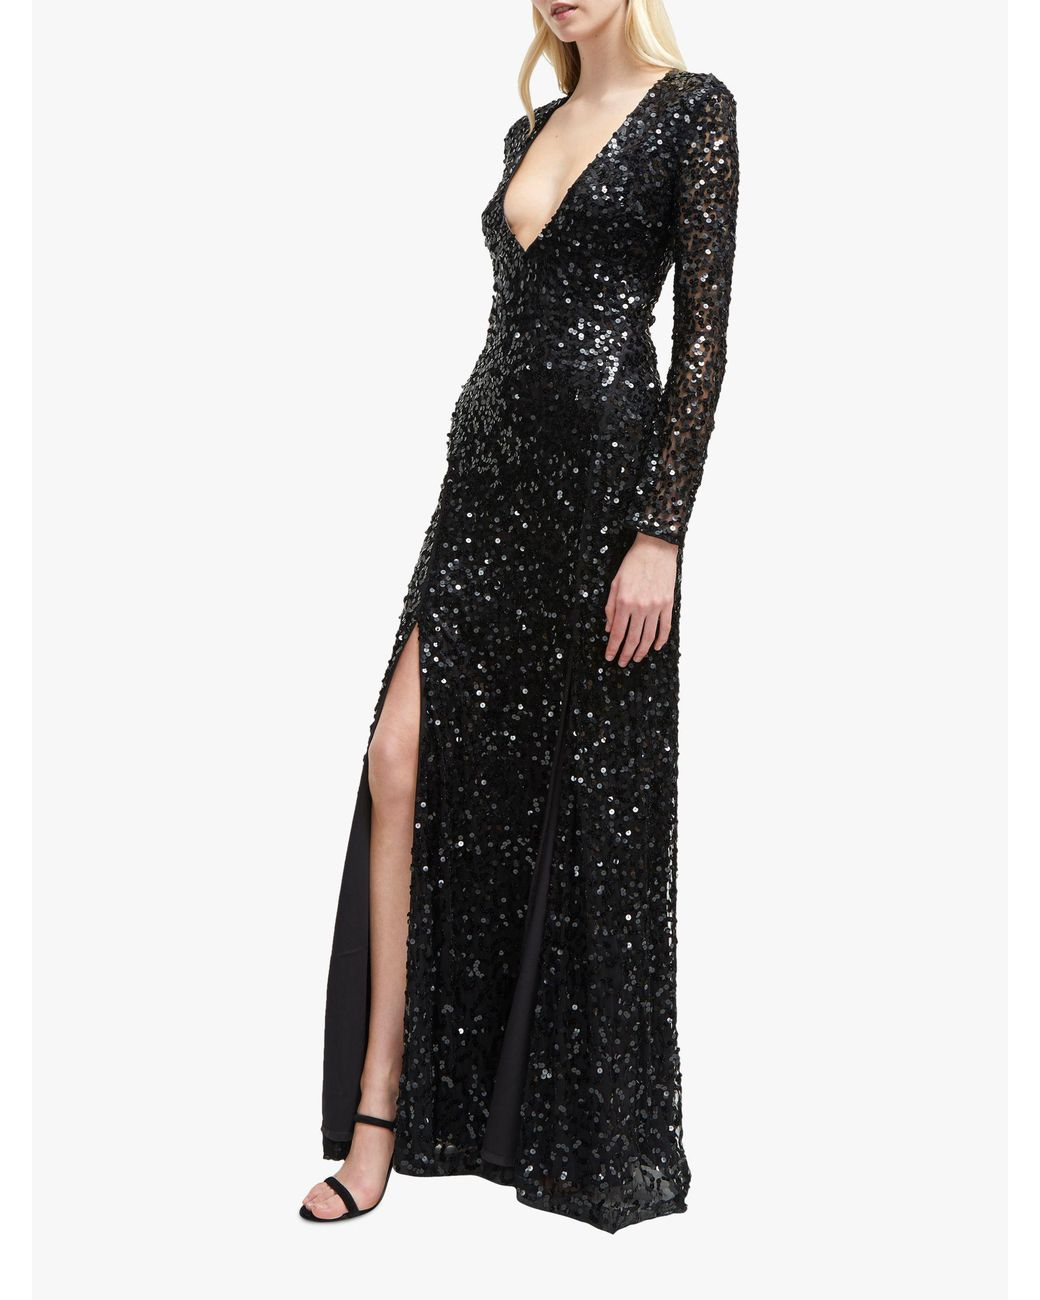 8ec6750e4e9 French Connection Helena Sequin V-neck Maxi Dress in Black - Lyst